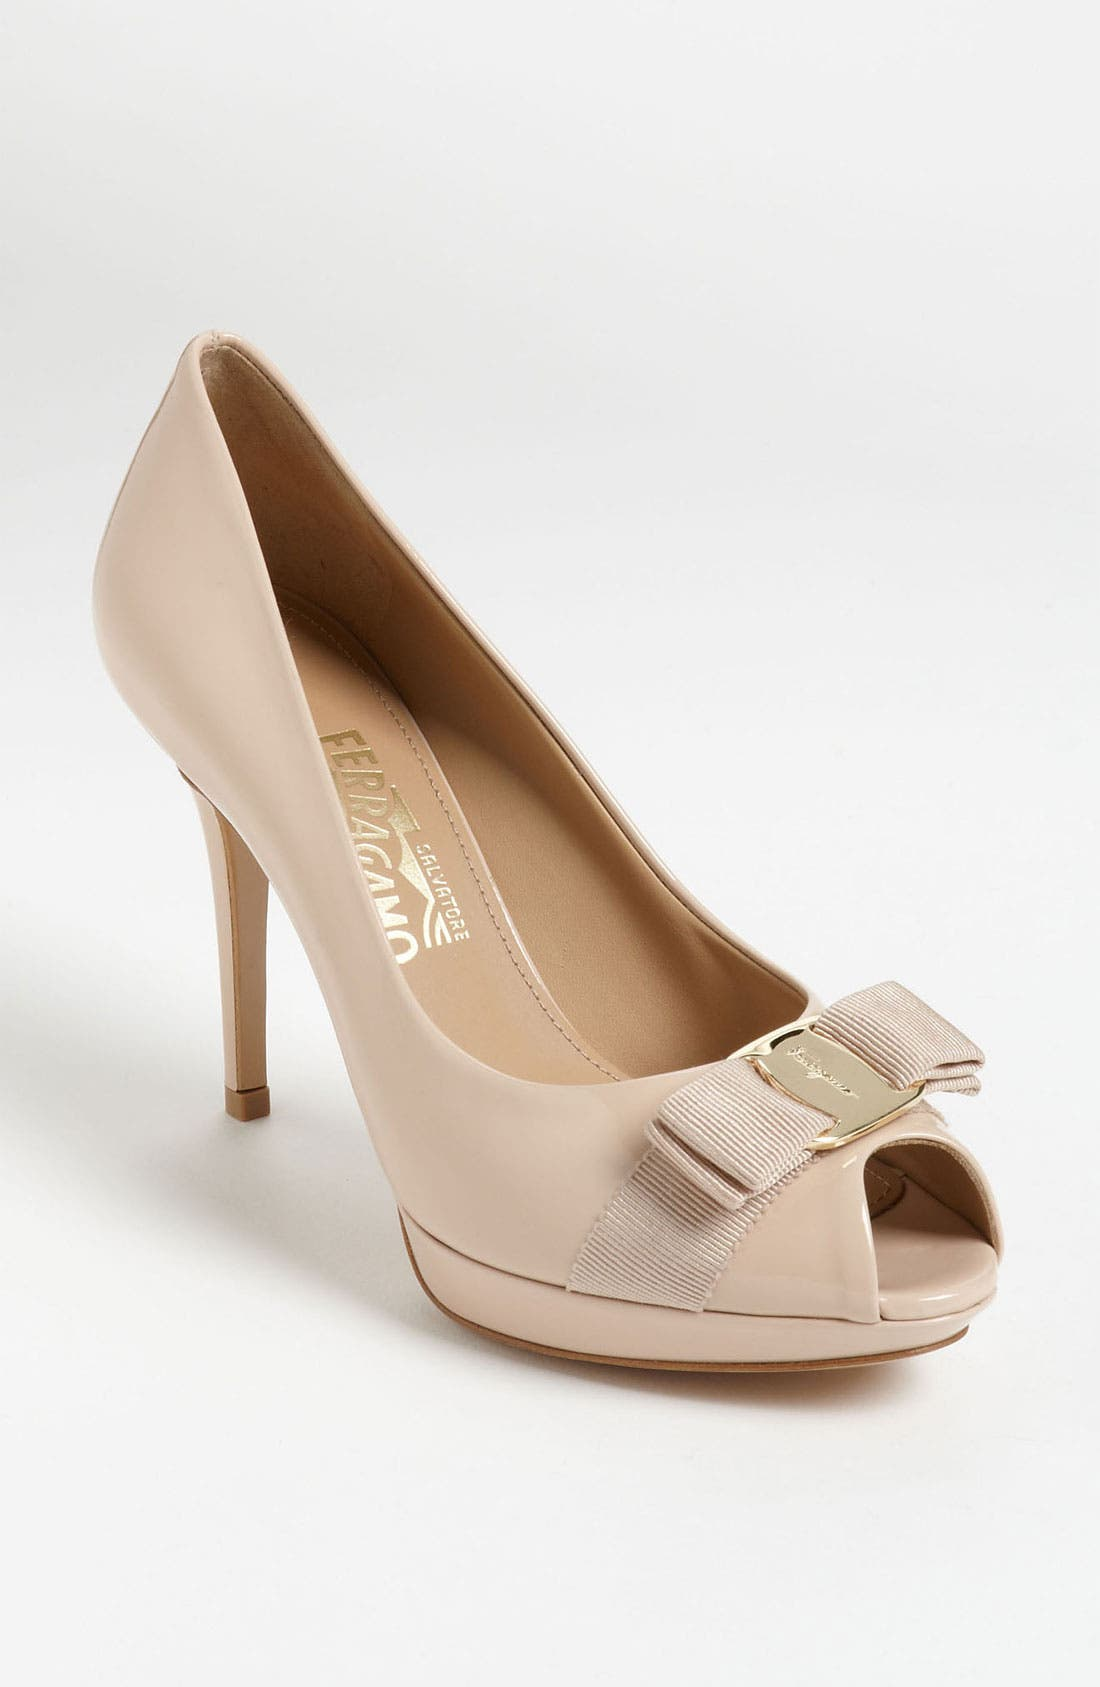 Alternate Image 1 Selected - Salvatore Ferragamo 'Talia' Pump